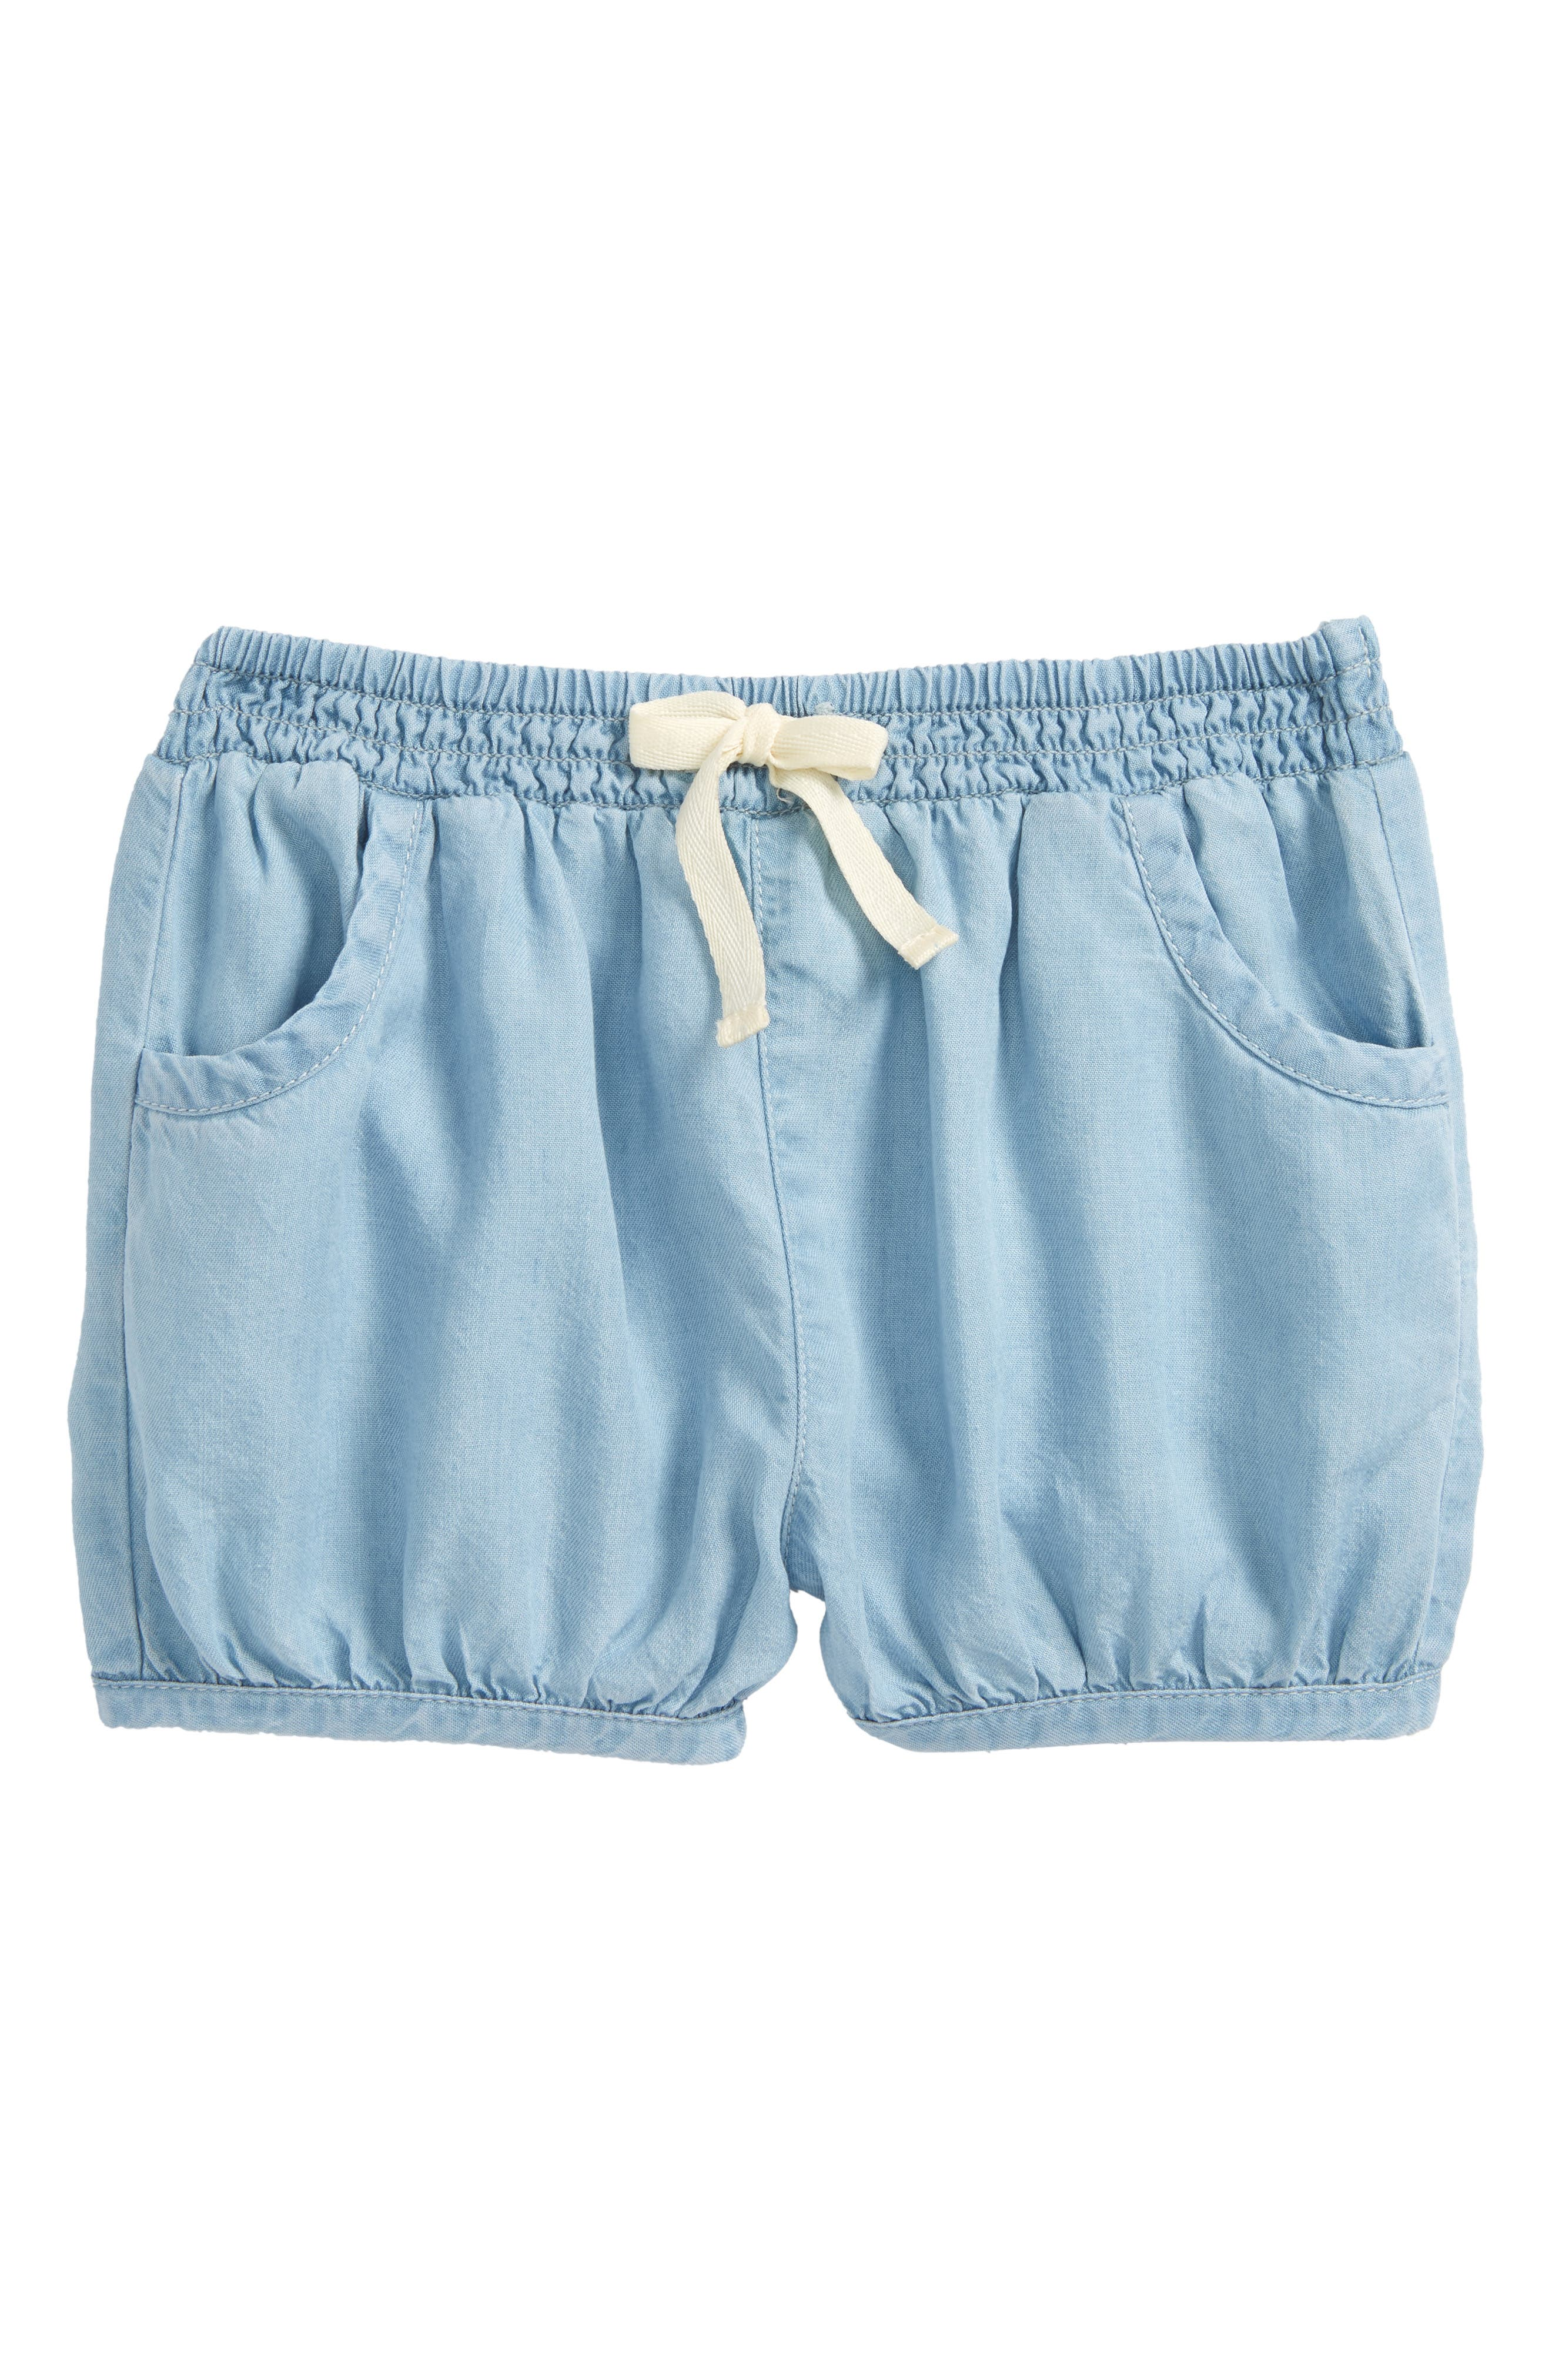 Tucker + Tate Essential Shorts (Baby Girls)